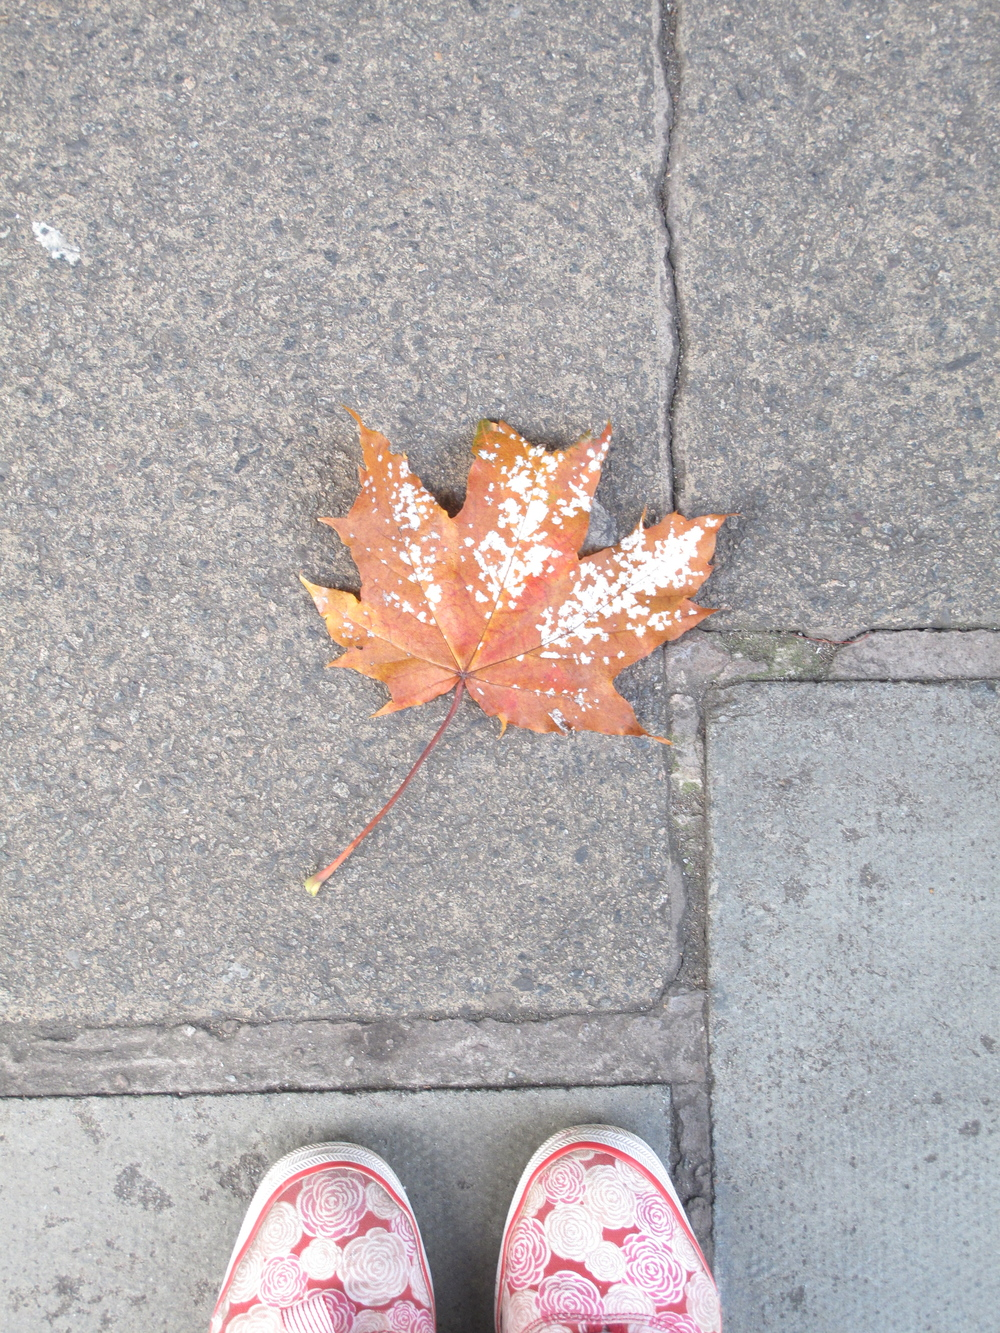 Autumn leaf on the stone pavement in Edinburgh